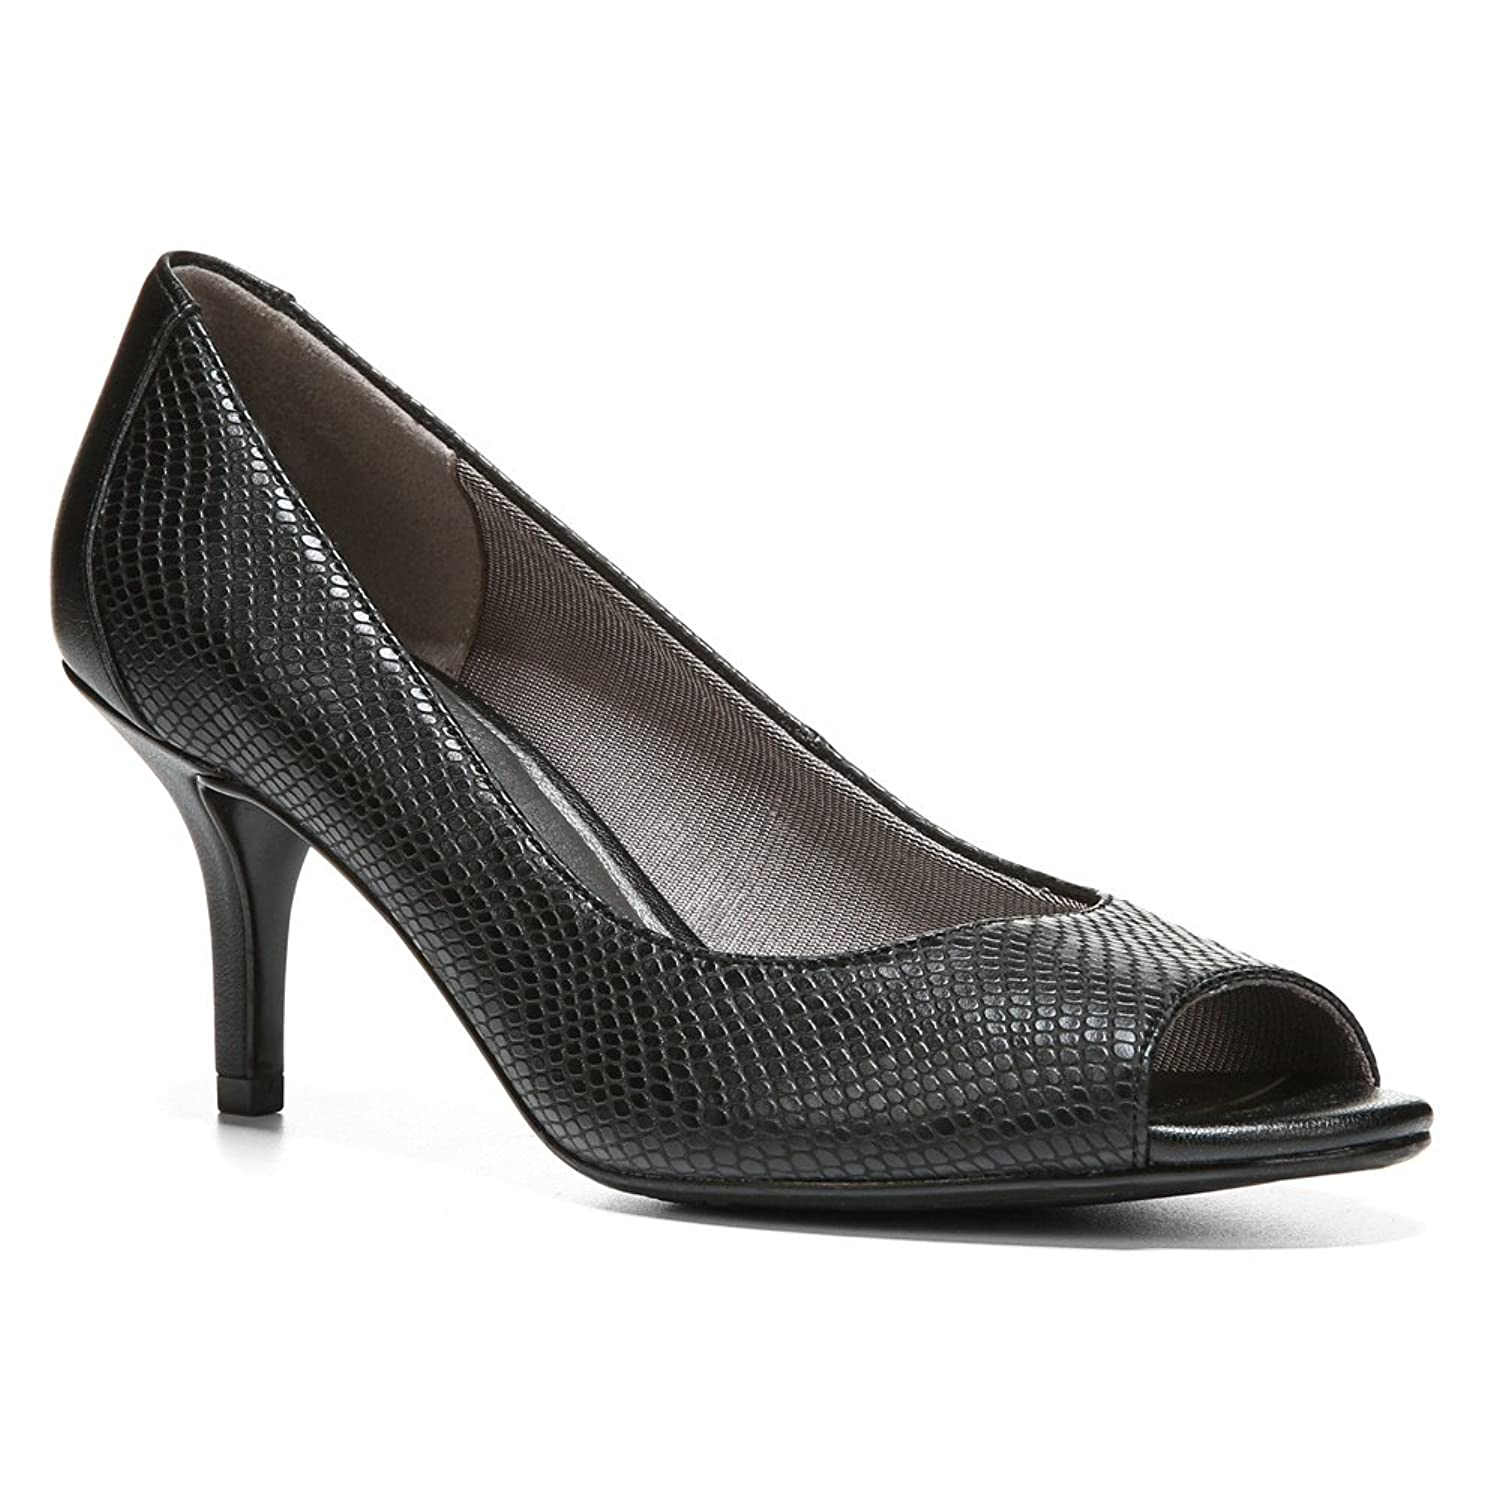 Women's Lifestride, Nightly Peep Toe Pumps BLACK SNAKE PRINT 5 M:  Amazon.ca: Shoes & Handbags